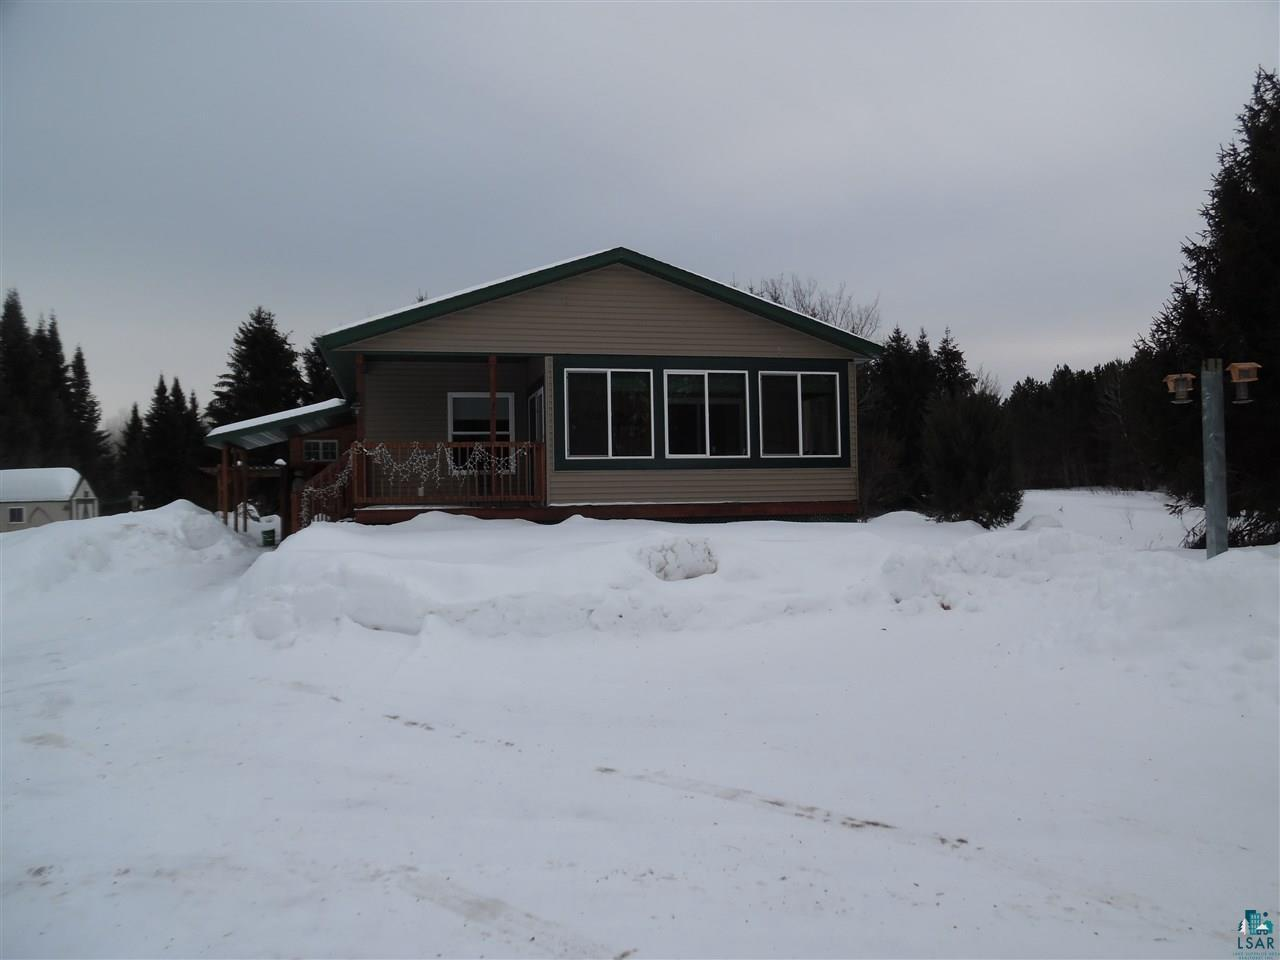 A great value you need to see.  Come take a look at this very well built ranch style home, with 2 full bedrooms and 2 baths on the main level along with main floor laundry.  This home is well built and very efficient to heat and cool.  Comes with 20 acres a garden shed storage shed and a large pole shed being used as a garage.  This home is set up for a 3 bedroom home for the septic use and is a conventional septic system. This home has a full dry basement, with a large rec-room, wood working shop and a nice den can be used as an office.  Also in the basement is a 1/4 bathroom and lots of storage.  Make an appointment today and don't let this one slip away.